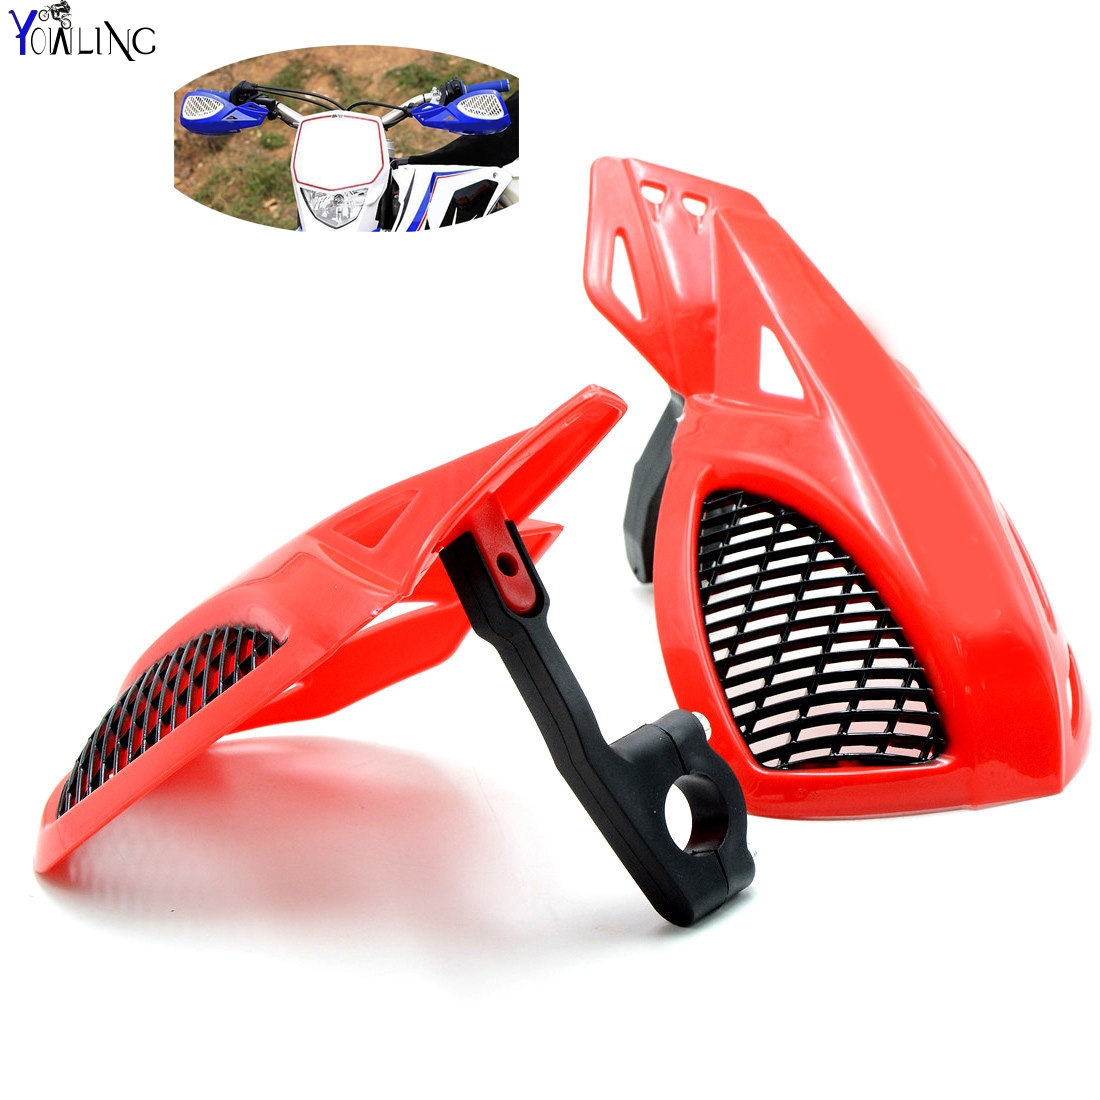 Dirt bike Motorcycle 7/8''22mm handlebar brake hand guard For HONDA CRF250 CRF450 CRF1000 CRM250  XR250 XR400 AR F L M R X dirt bike motorcycle 7 8 22mm handlebar brake hand guard for yamaha yz250x yz426f yz450f yz450fx yz80 yz85